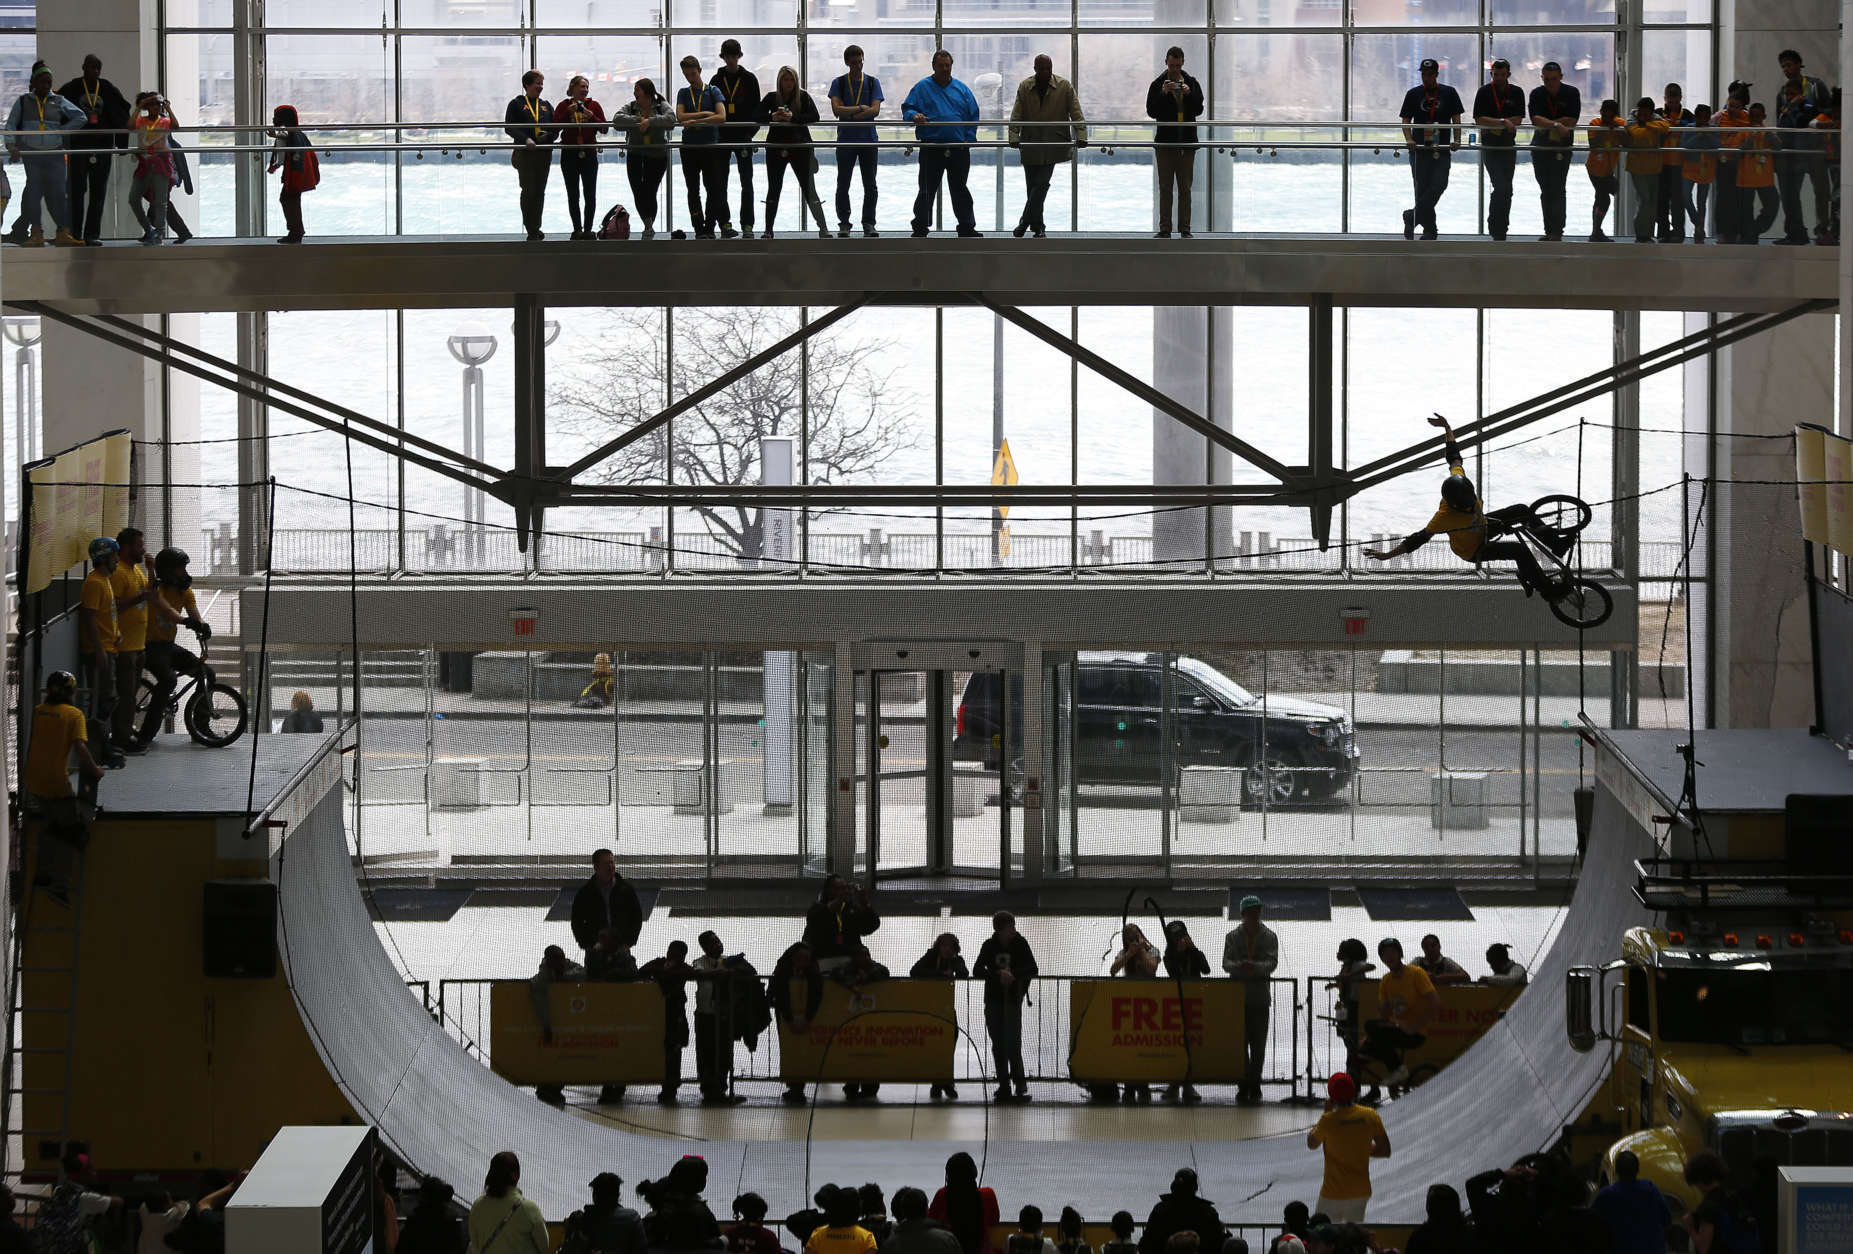 Spectators watch a cyclist perform on a half pipe at COBO Center in conjunction with the Shell Eco-marathon Americas competition in Detroit Friday, April 10, 2015. (AP Photo/Paul Sancya)